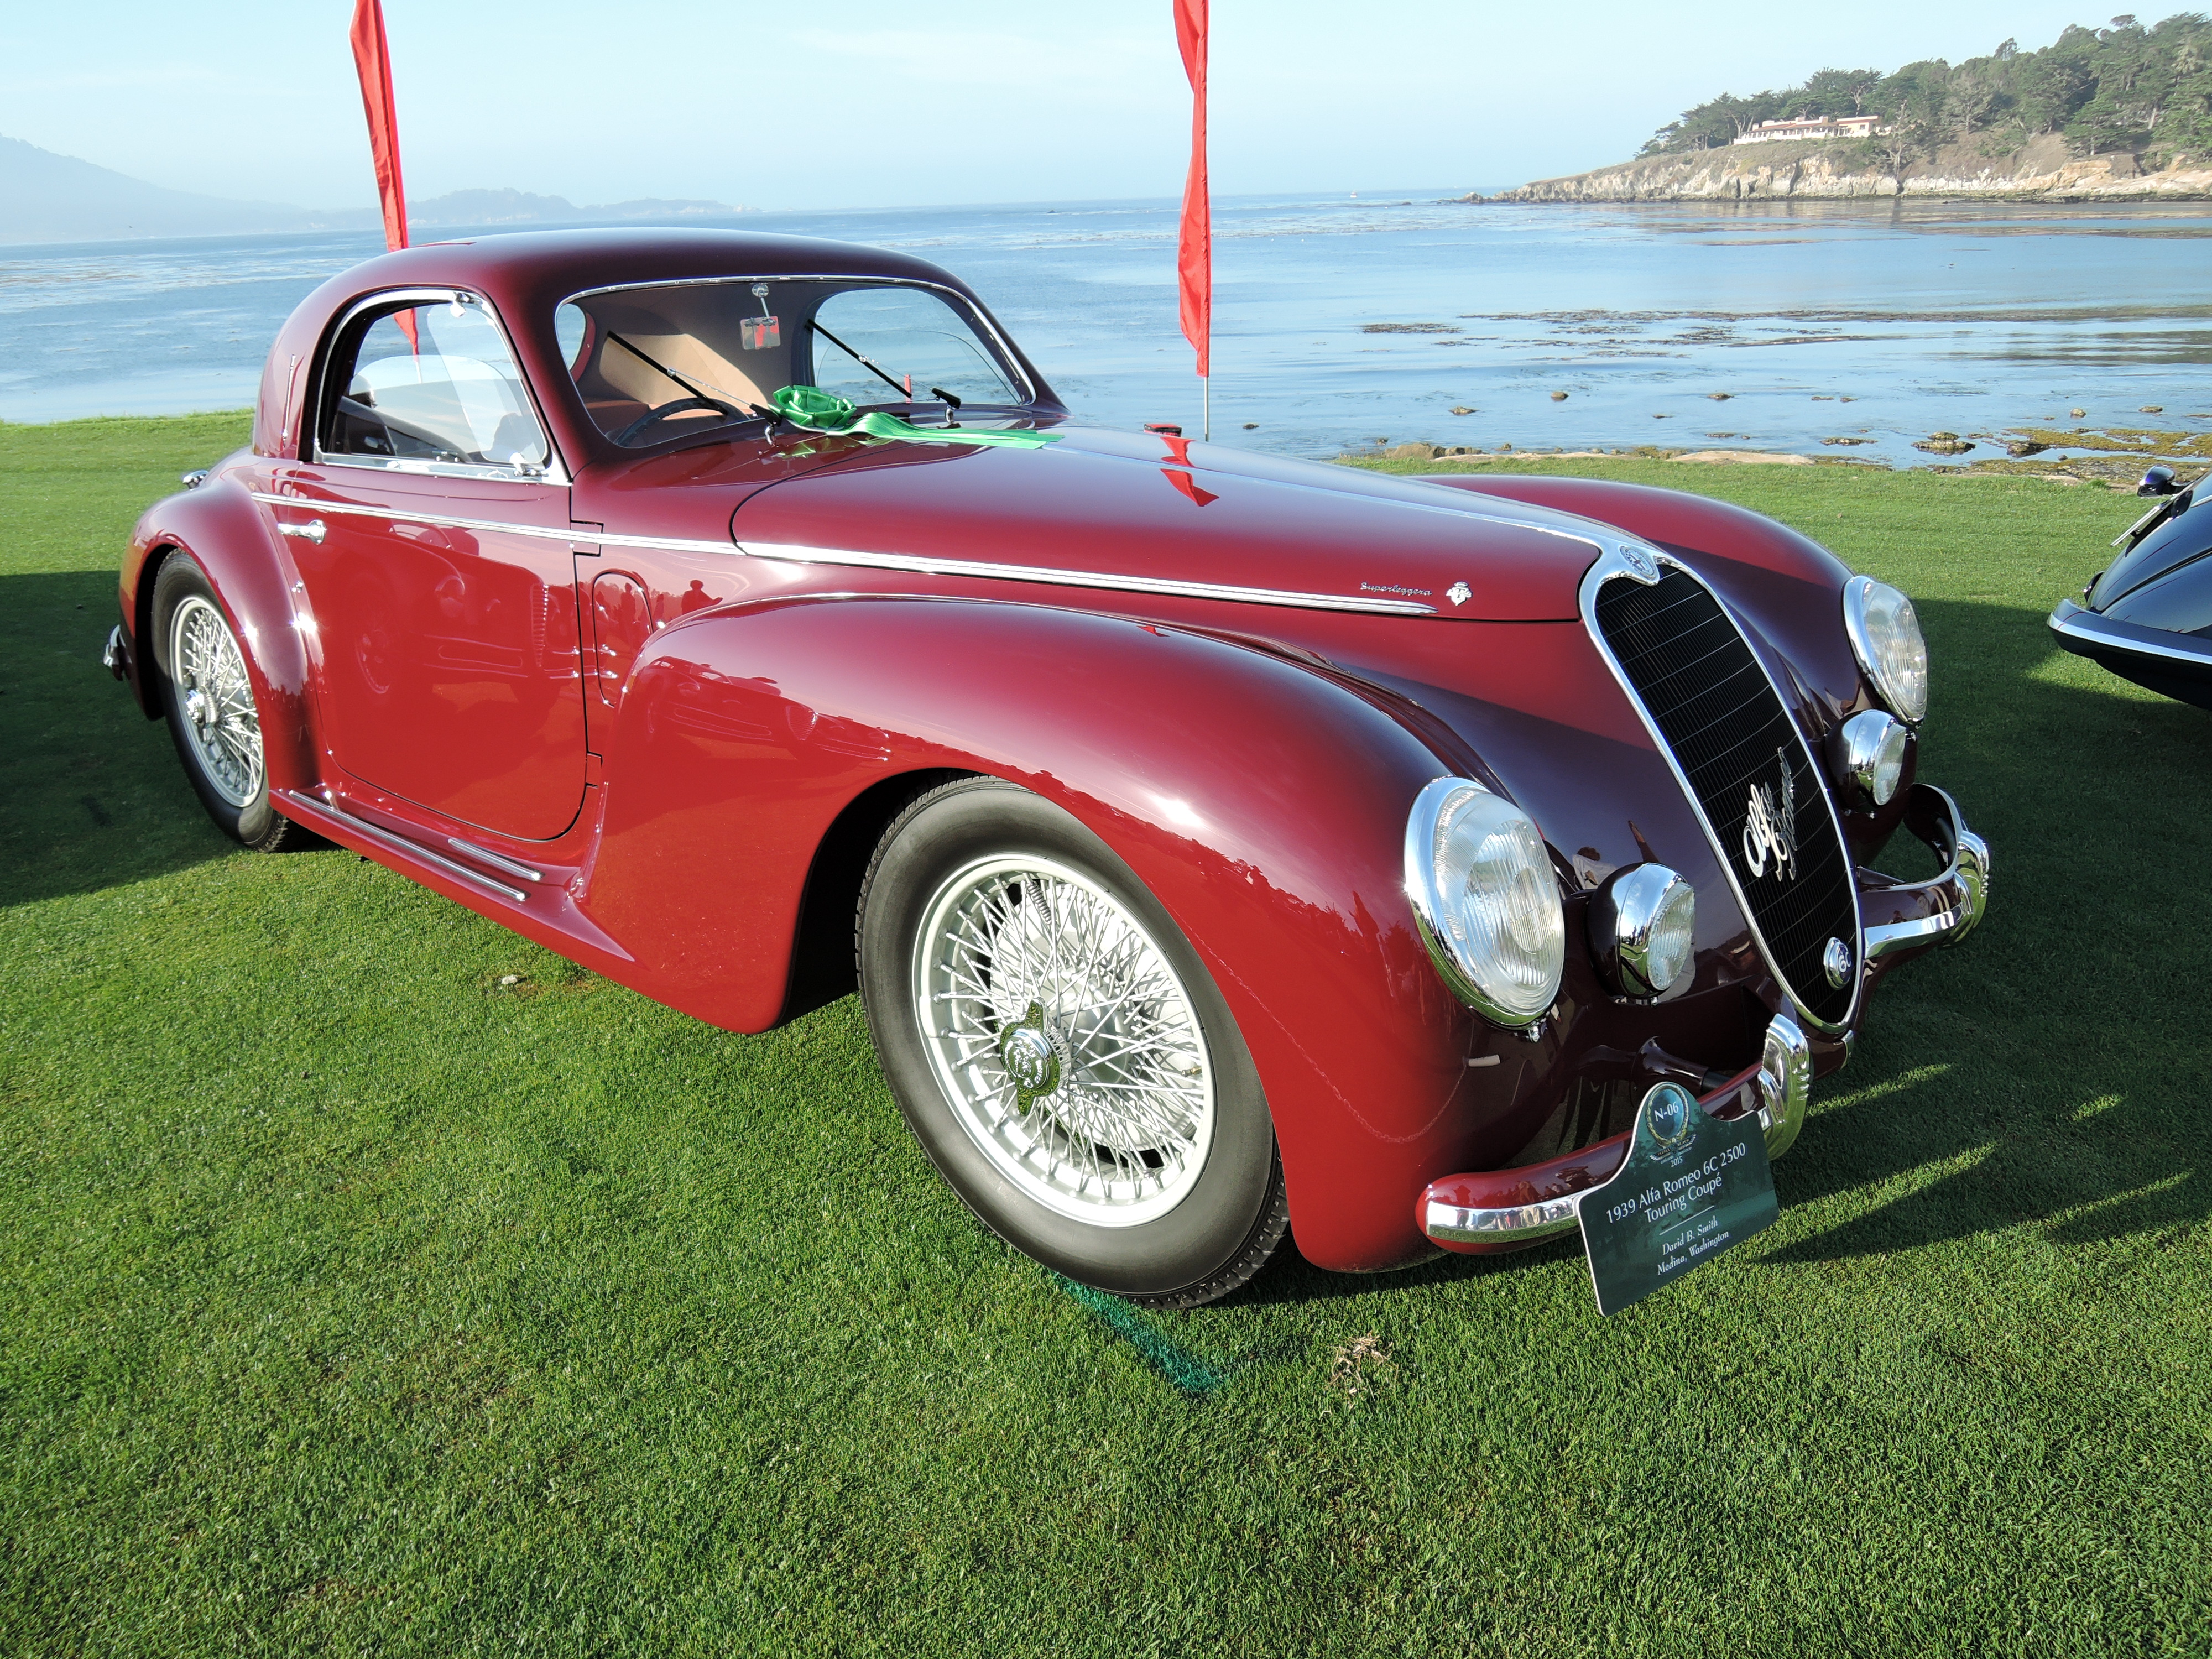 maroon 1939 Alfa Romeo 6C 2500 Touring Coupe - concours d'elegance